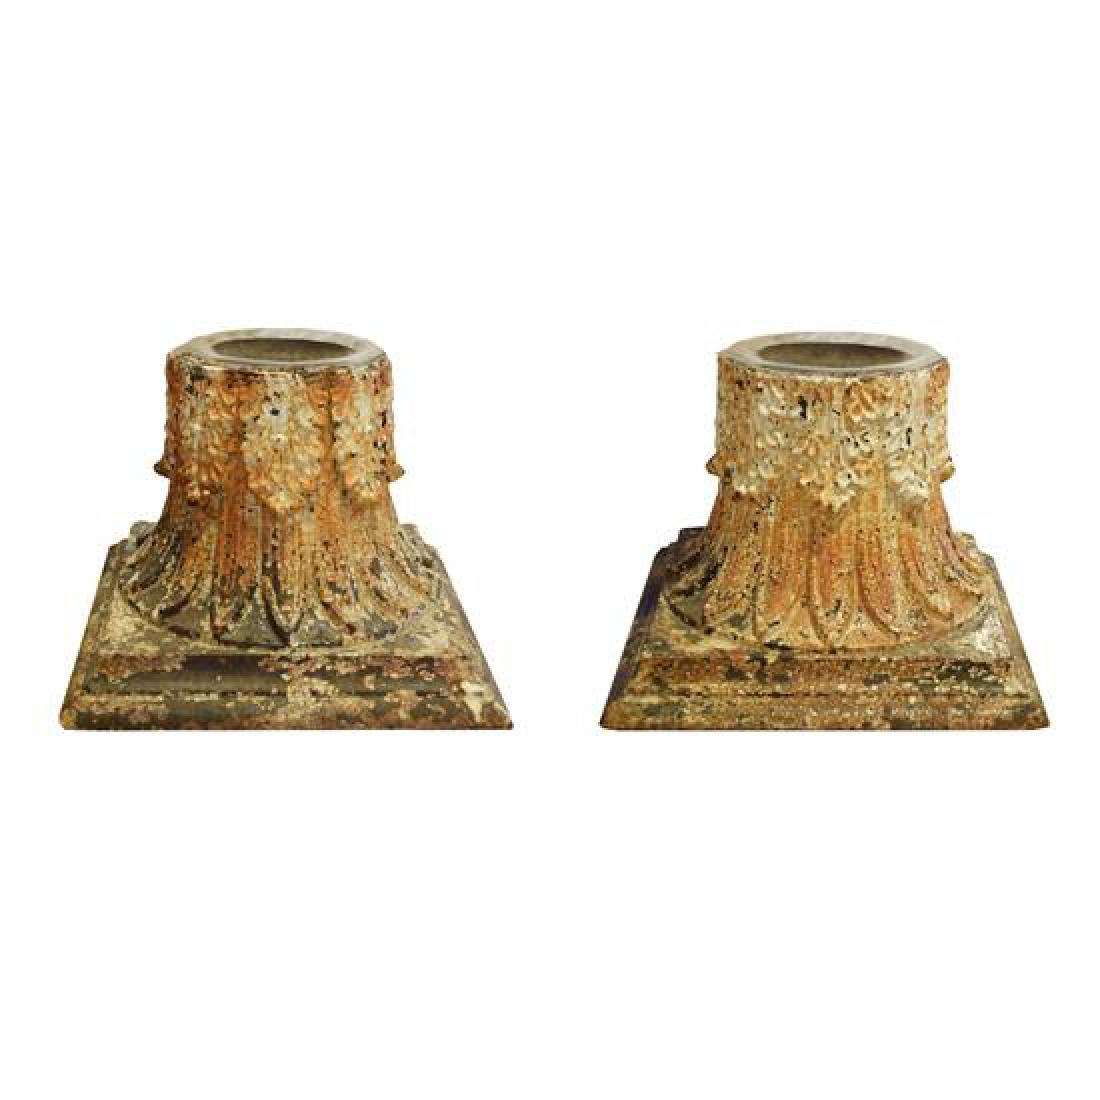 "A Pair of Cast Iron Capitals with Candles 13"" W x 13"" D"